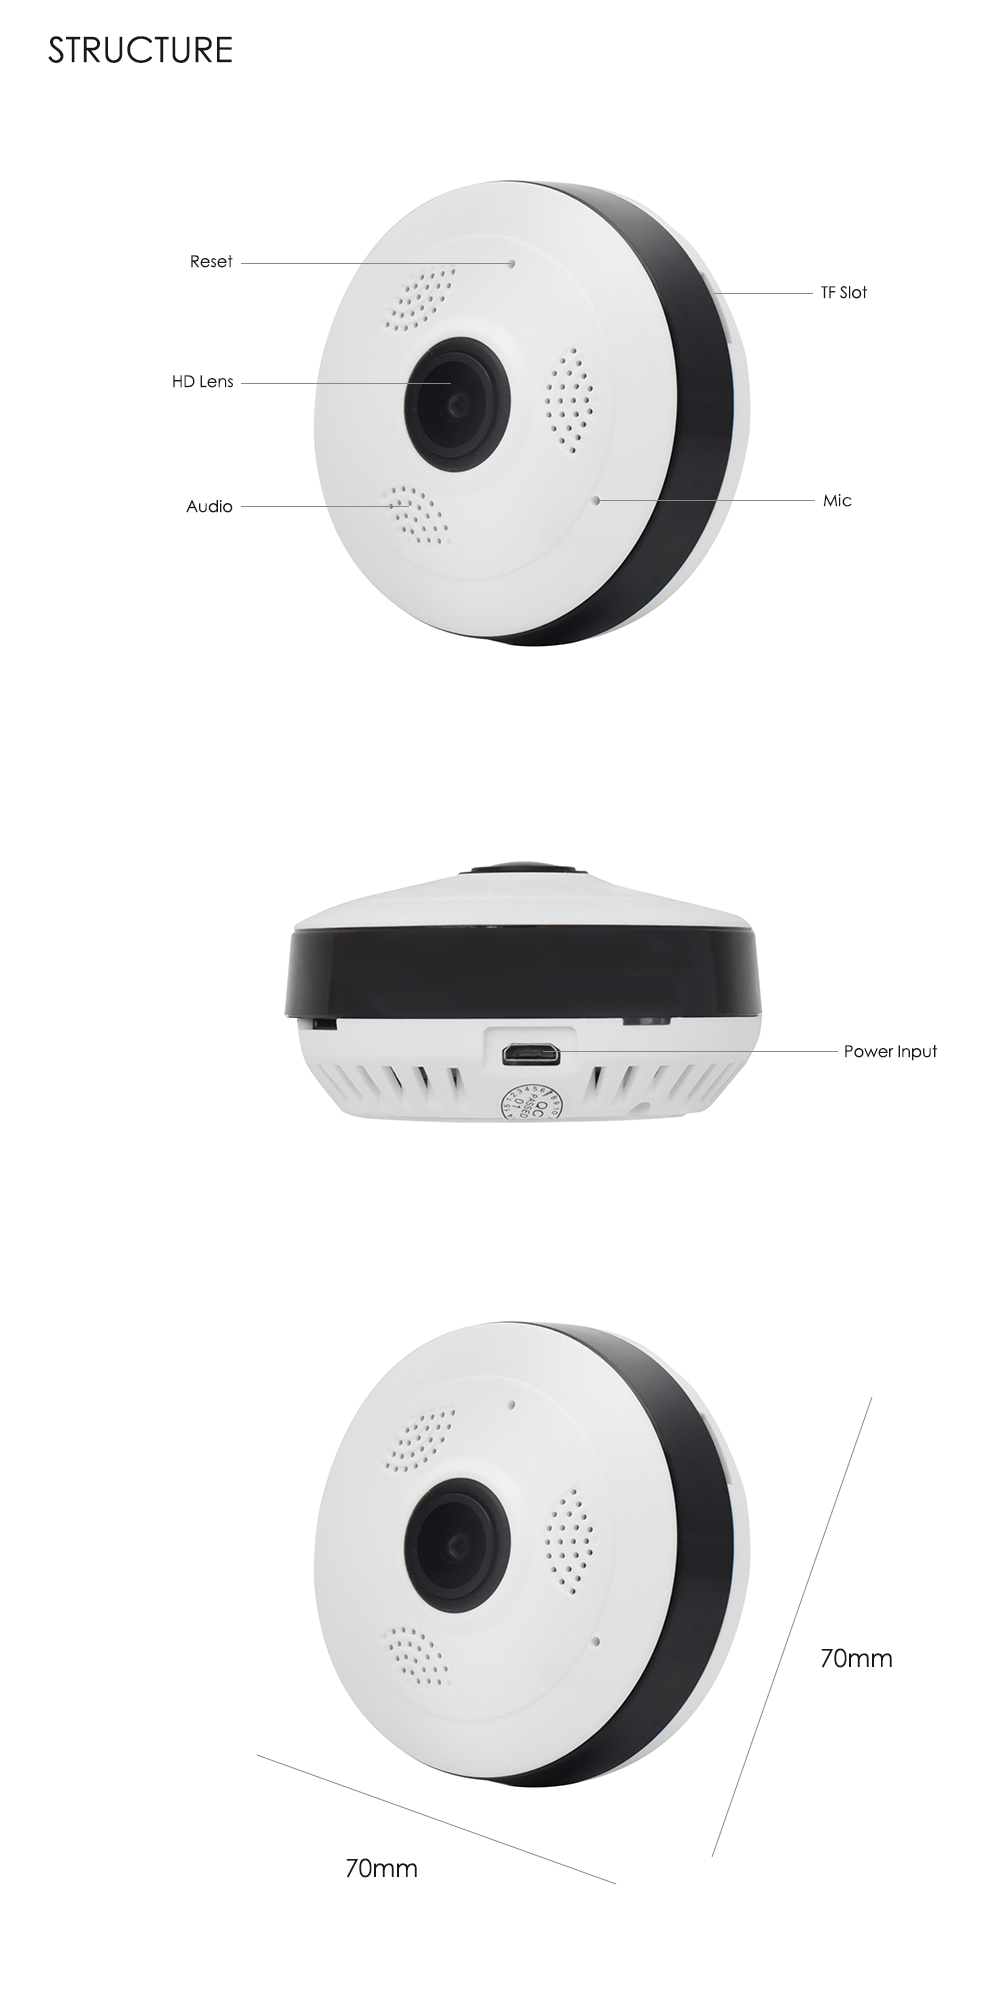 Wistino CCTV HD 960P WIFI IP Camera Alarm Wireless VR Panoramic Camera Fisheye 360 Degree Video Baby Monitor Home Surveillance (14)